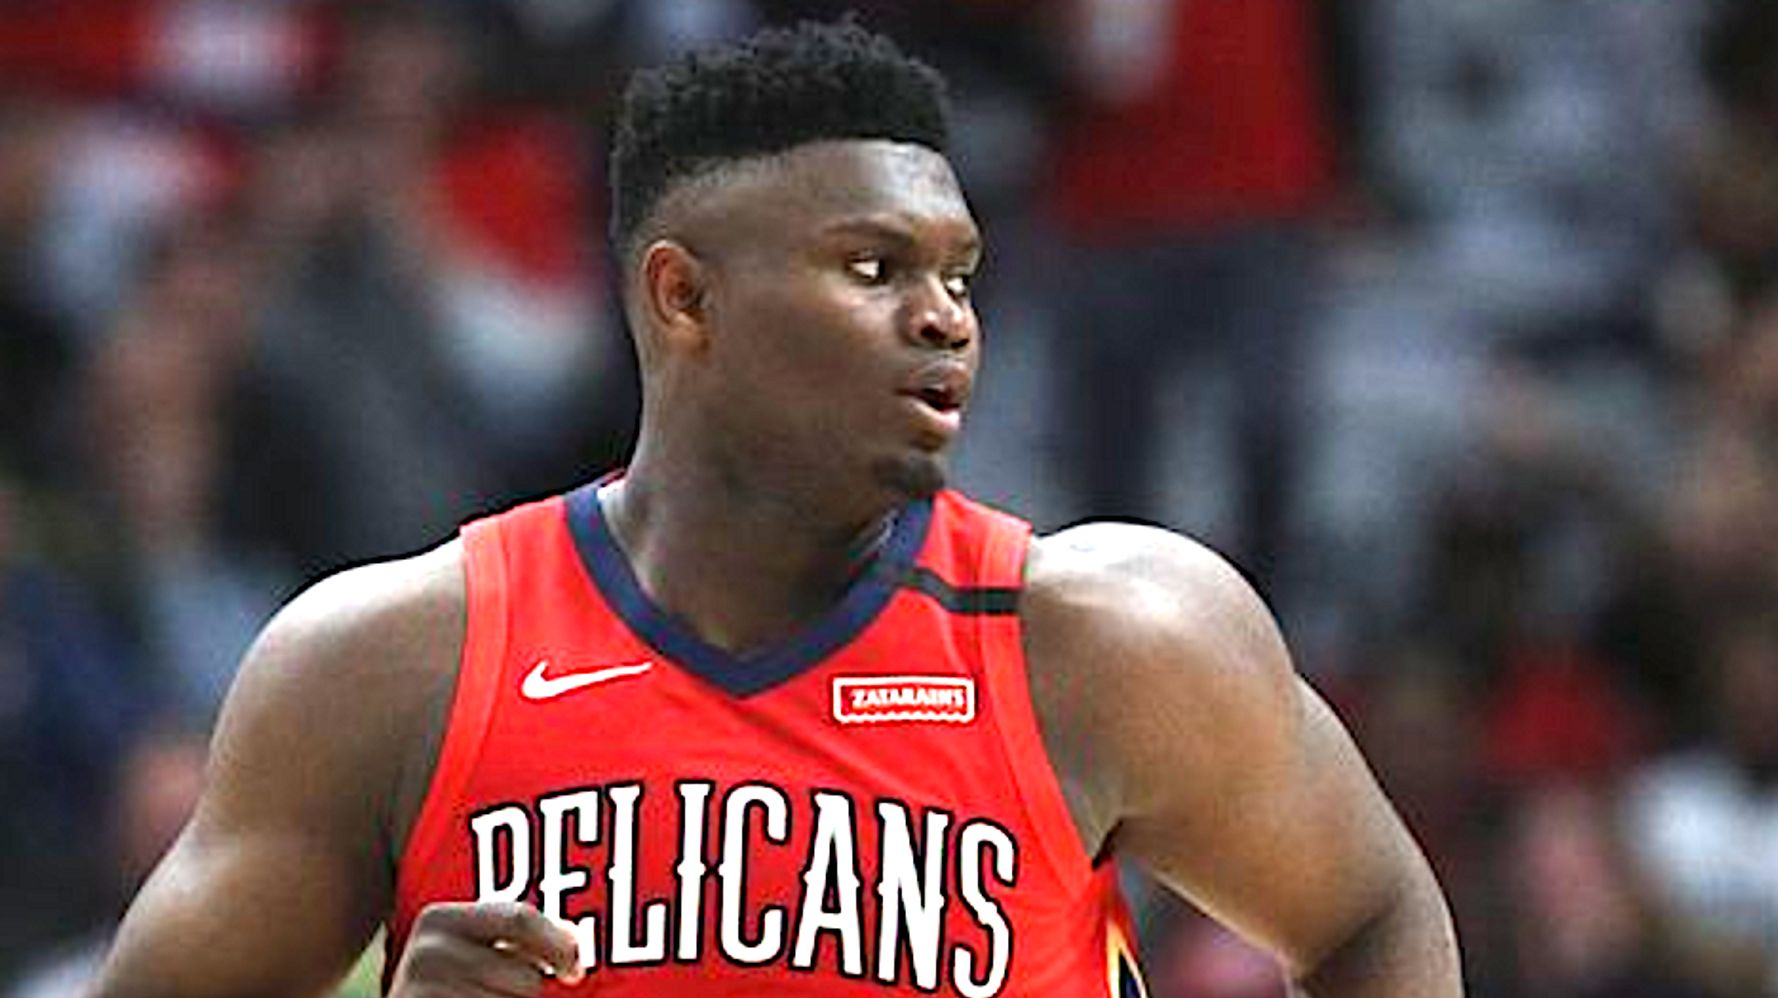 Weight loss diet Zion Williamson Body-Shamed By ESPN In NBA ... thumbnail